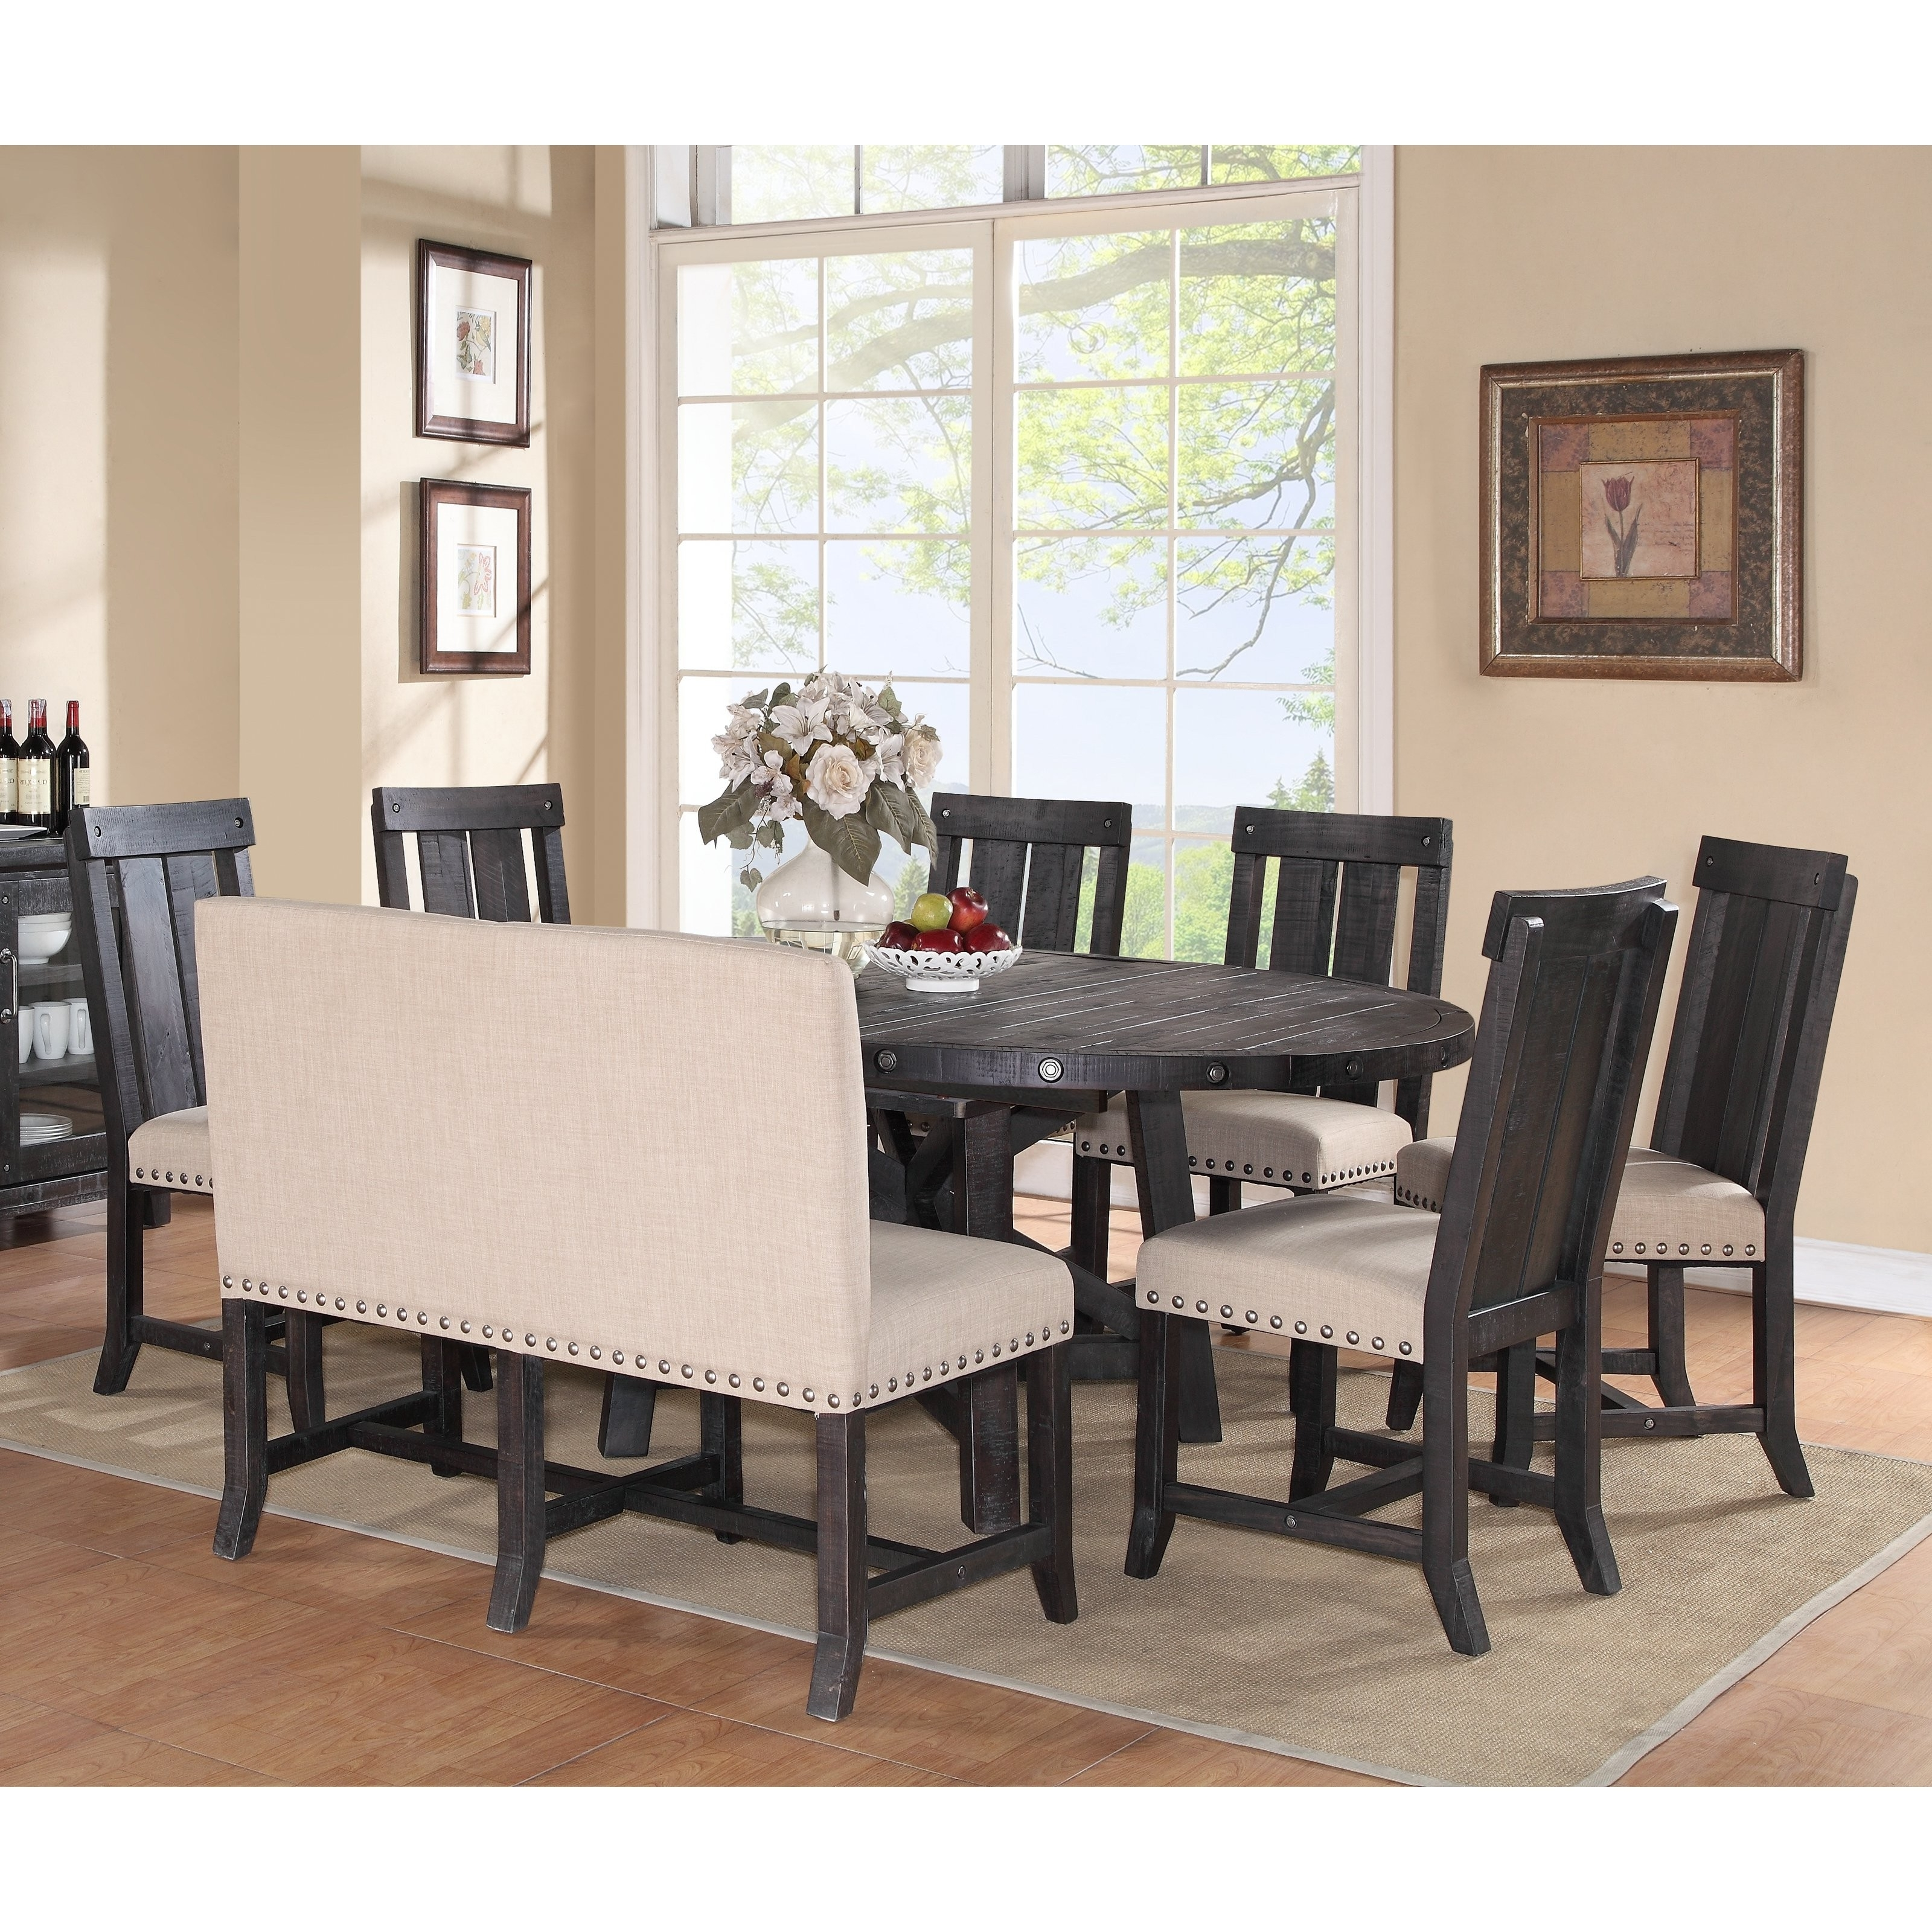 Most Recent Coffee Table Dinner Table Best Of Amazon Emerald Home T100 0 For Chandler 7 Piece Extension Dining Sets With Fabric Side Chairs (View 20 of 25)